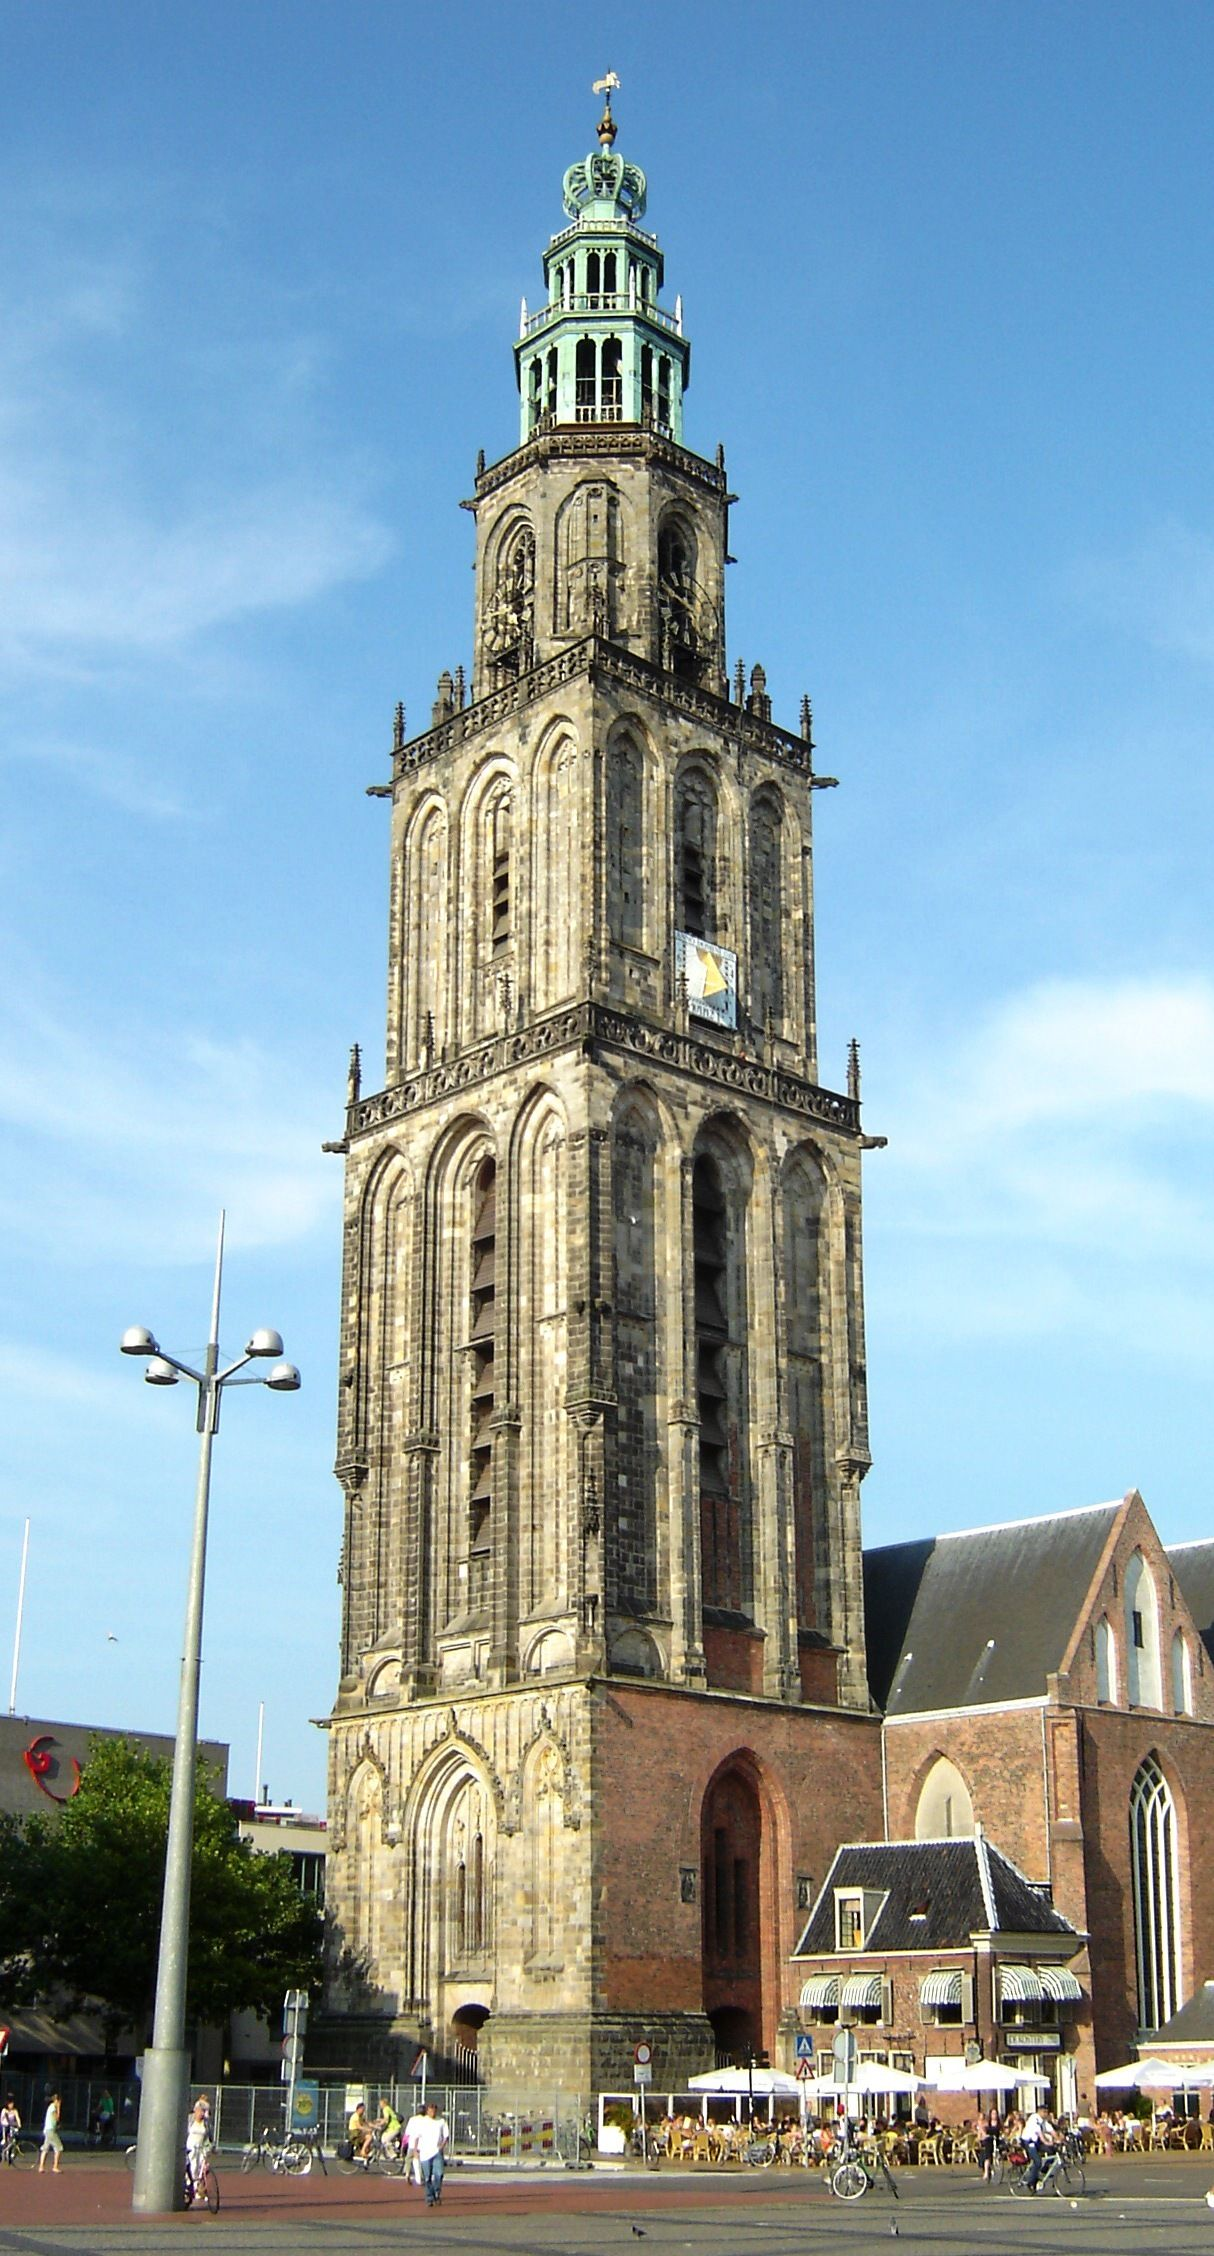 Groningen Möbel martinitoren in groningen the netherlands climbed this as a kid on